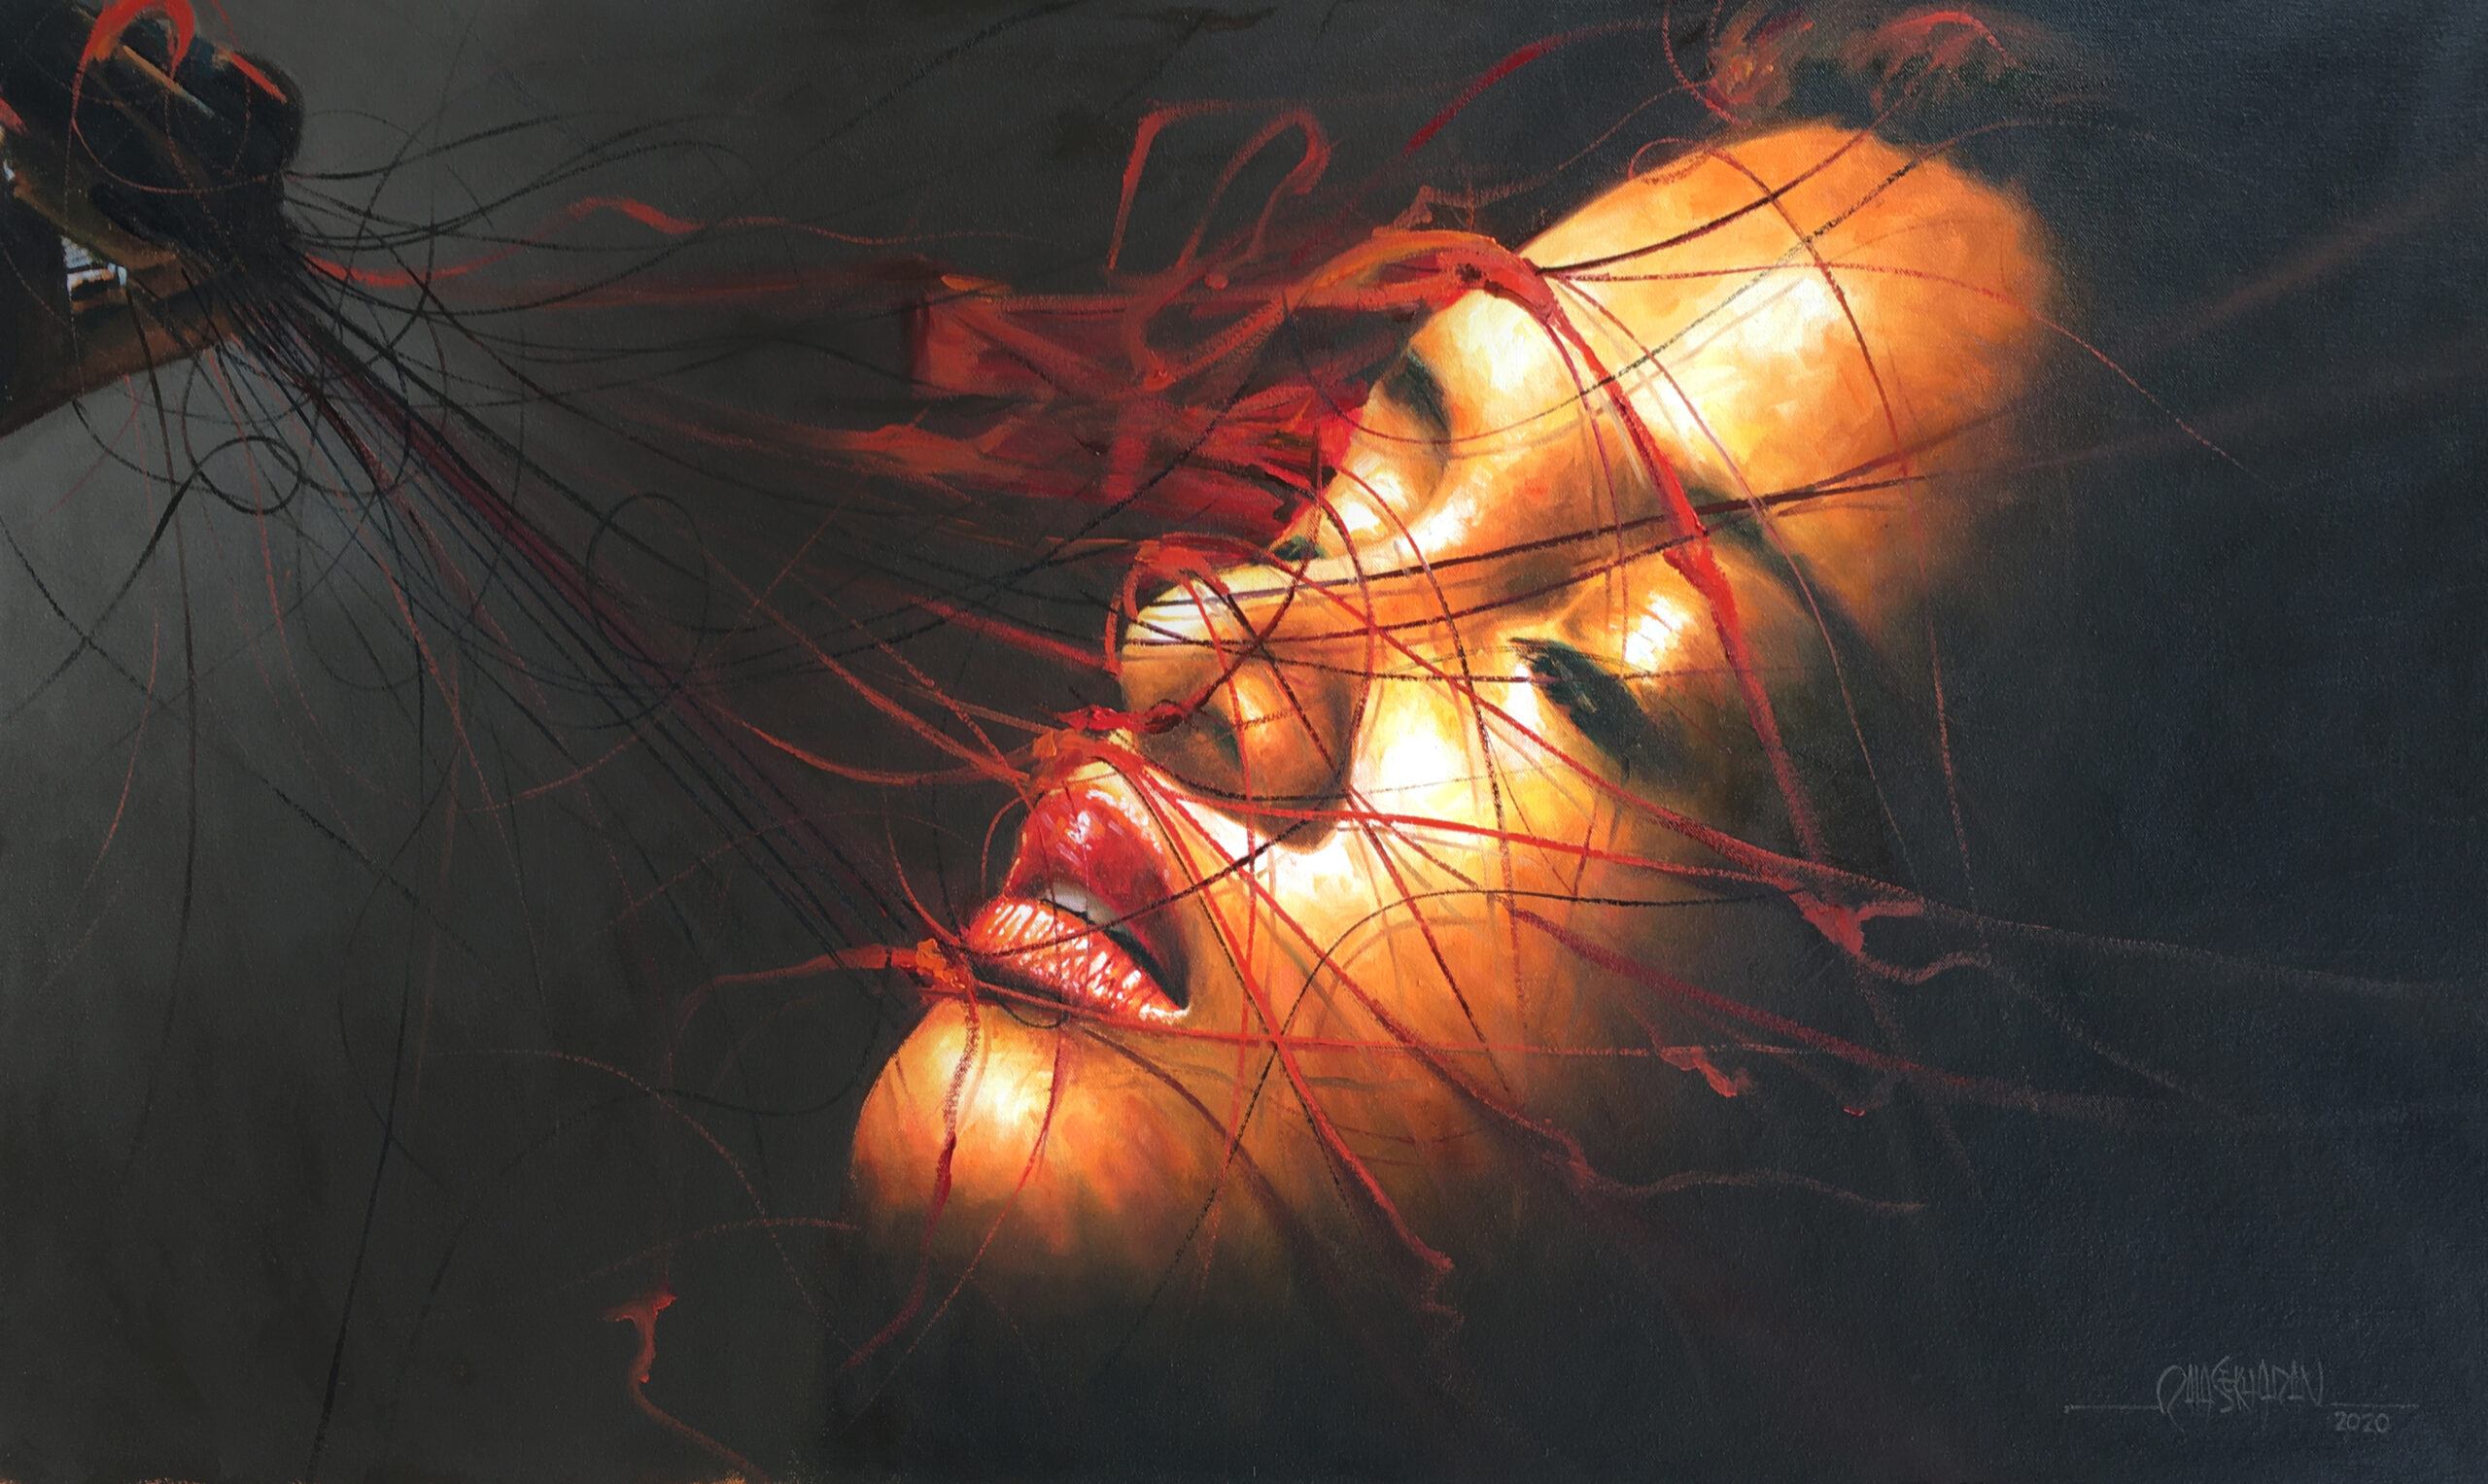 ECSTASY, OIL ON CANVAS 24 X 40, 3,00-